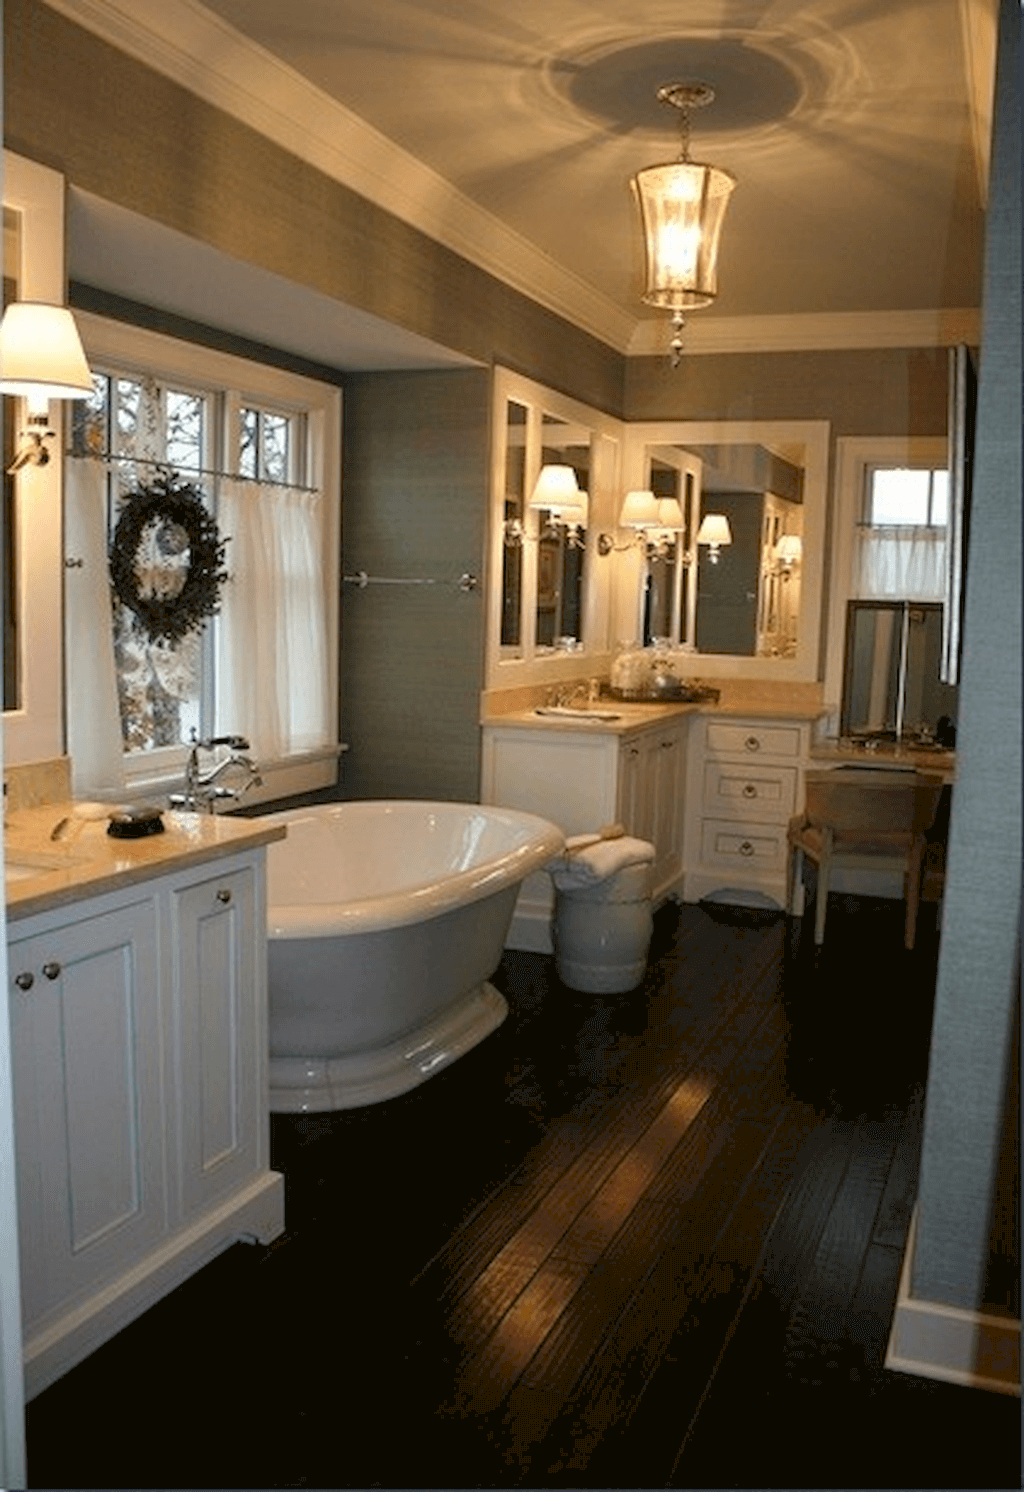 25 Stunning Shabby Chic Bathroom Designs That Will Adore You - 079B7D3190E146Afebc10853847Cdc29